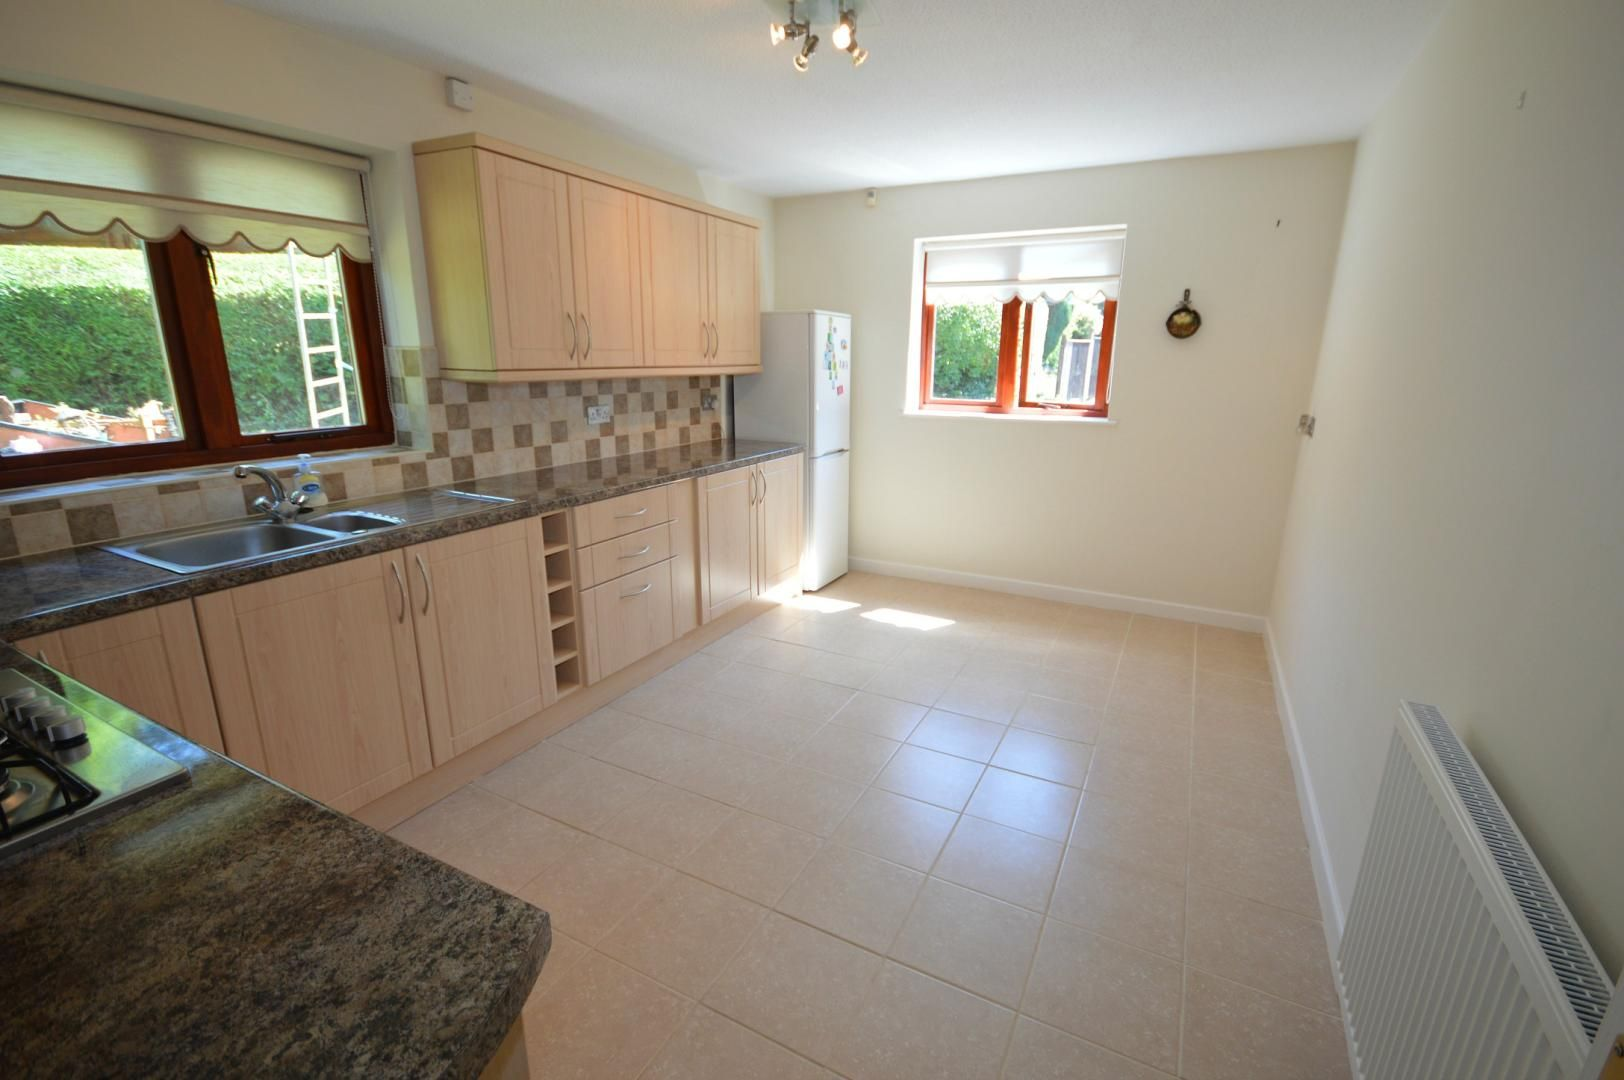 3 bed house to rent 5